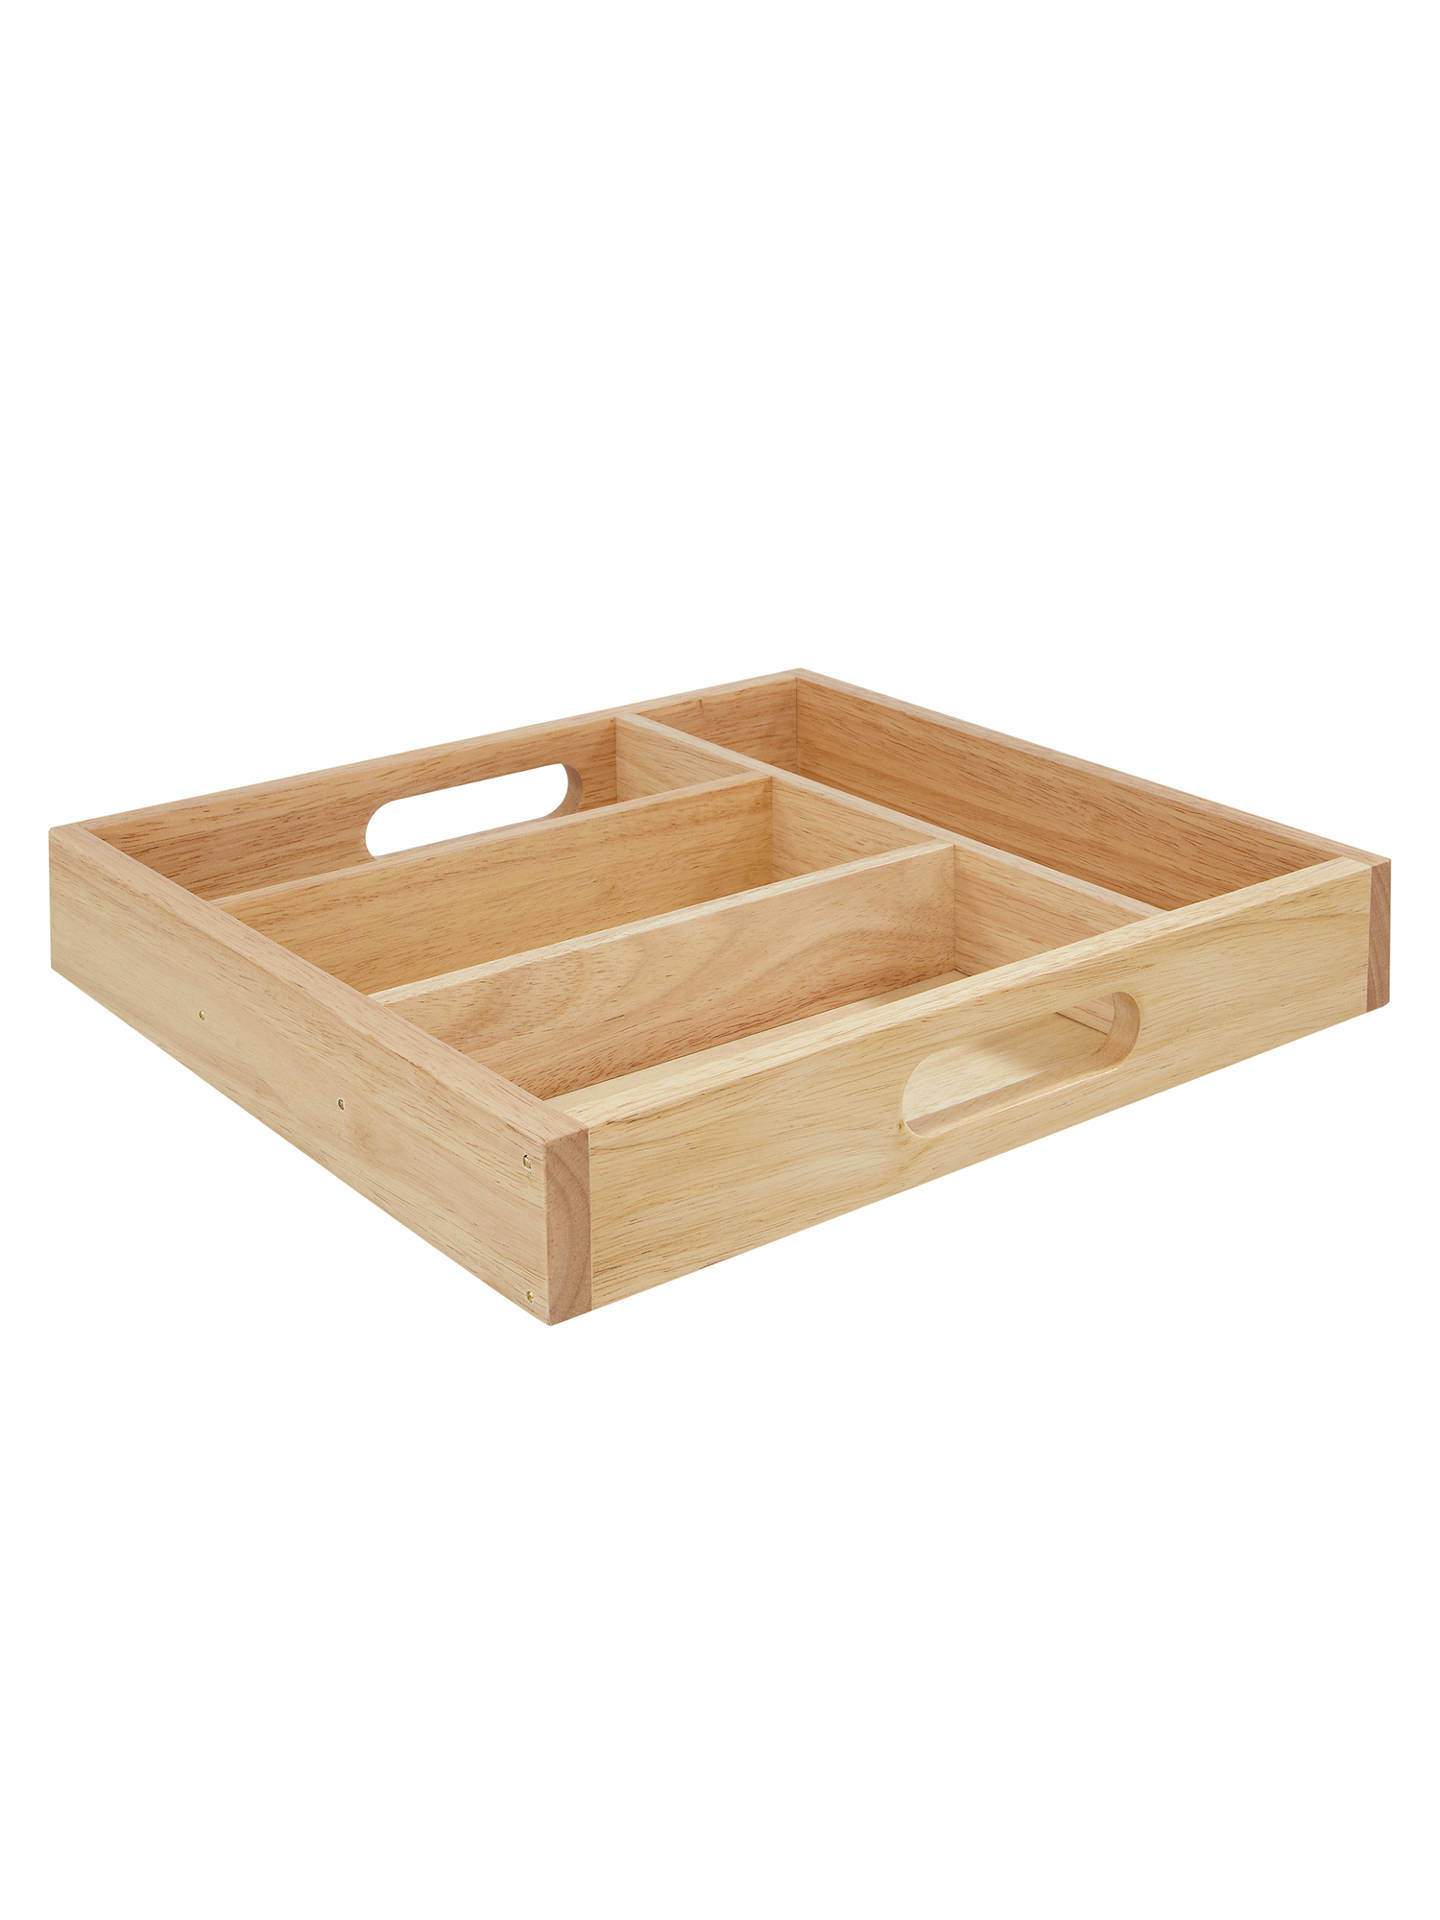 BuyRubberwood Cutlery Tray, 4 Compartments Online at johnlewis.com